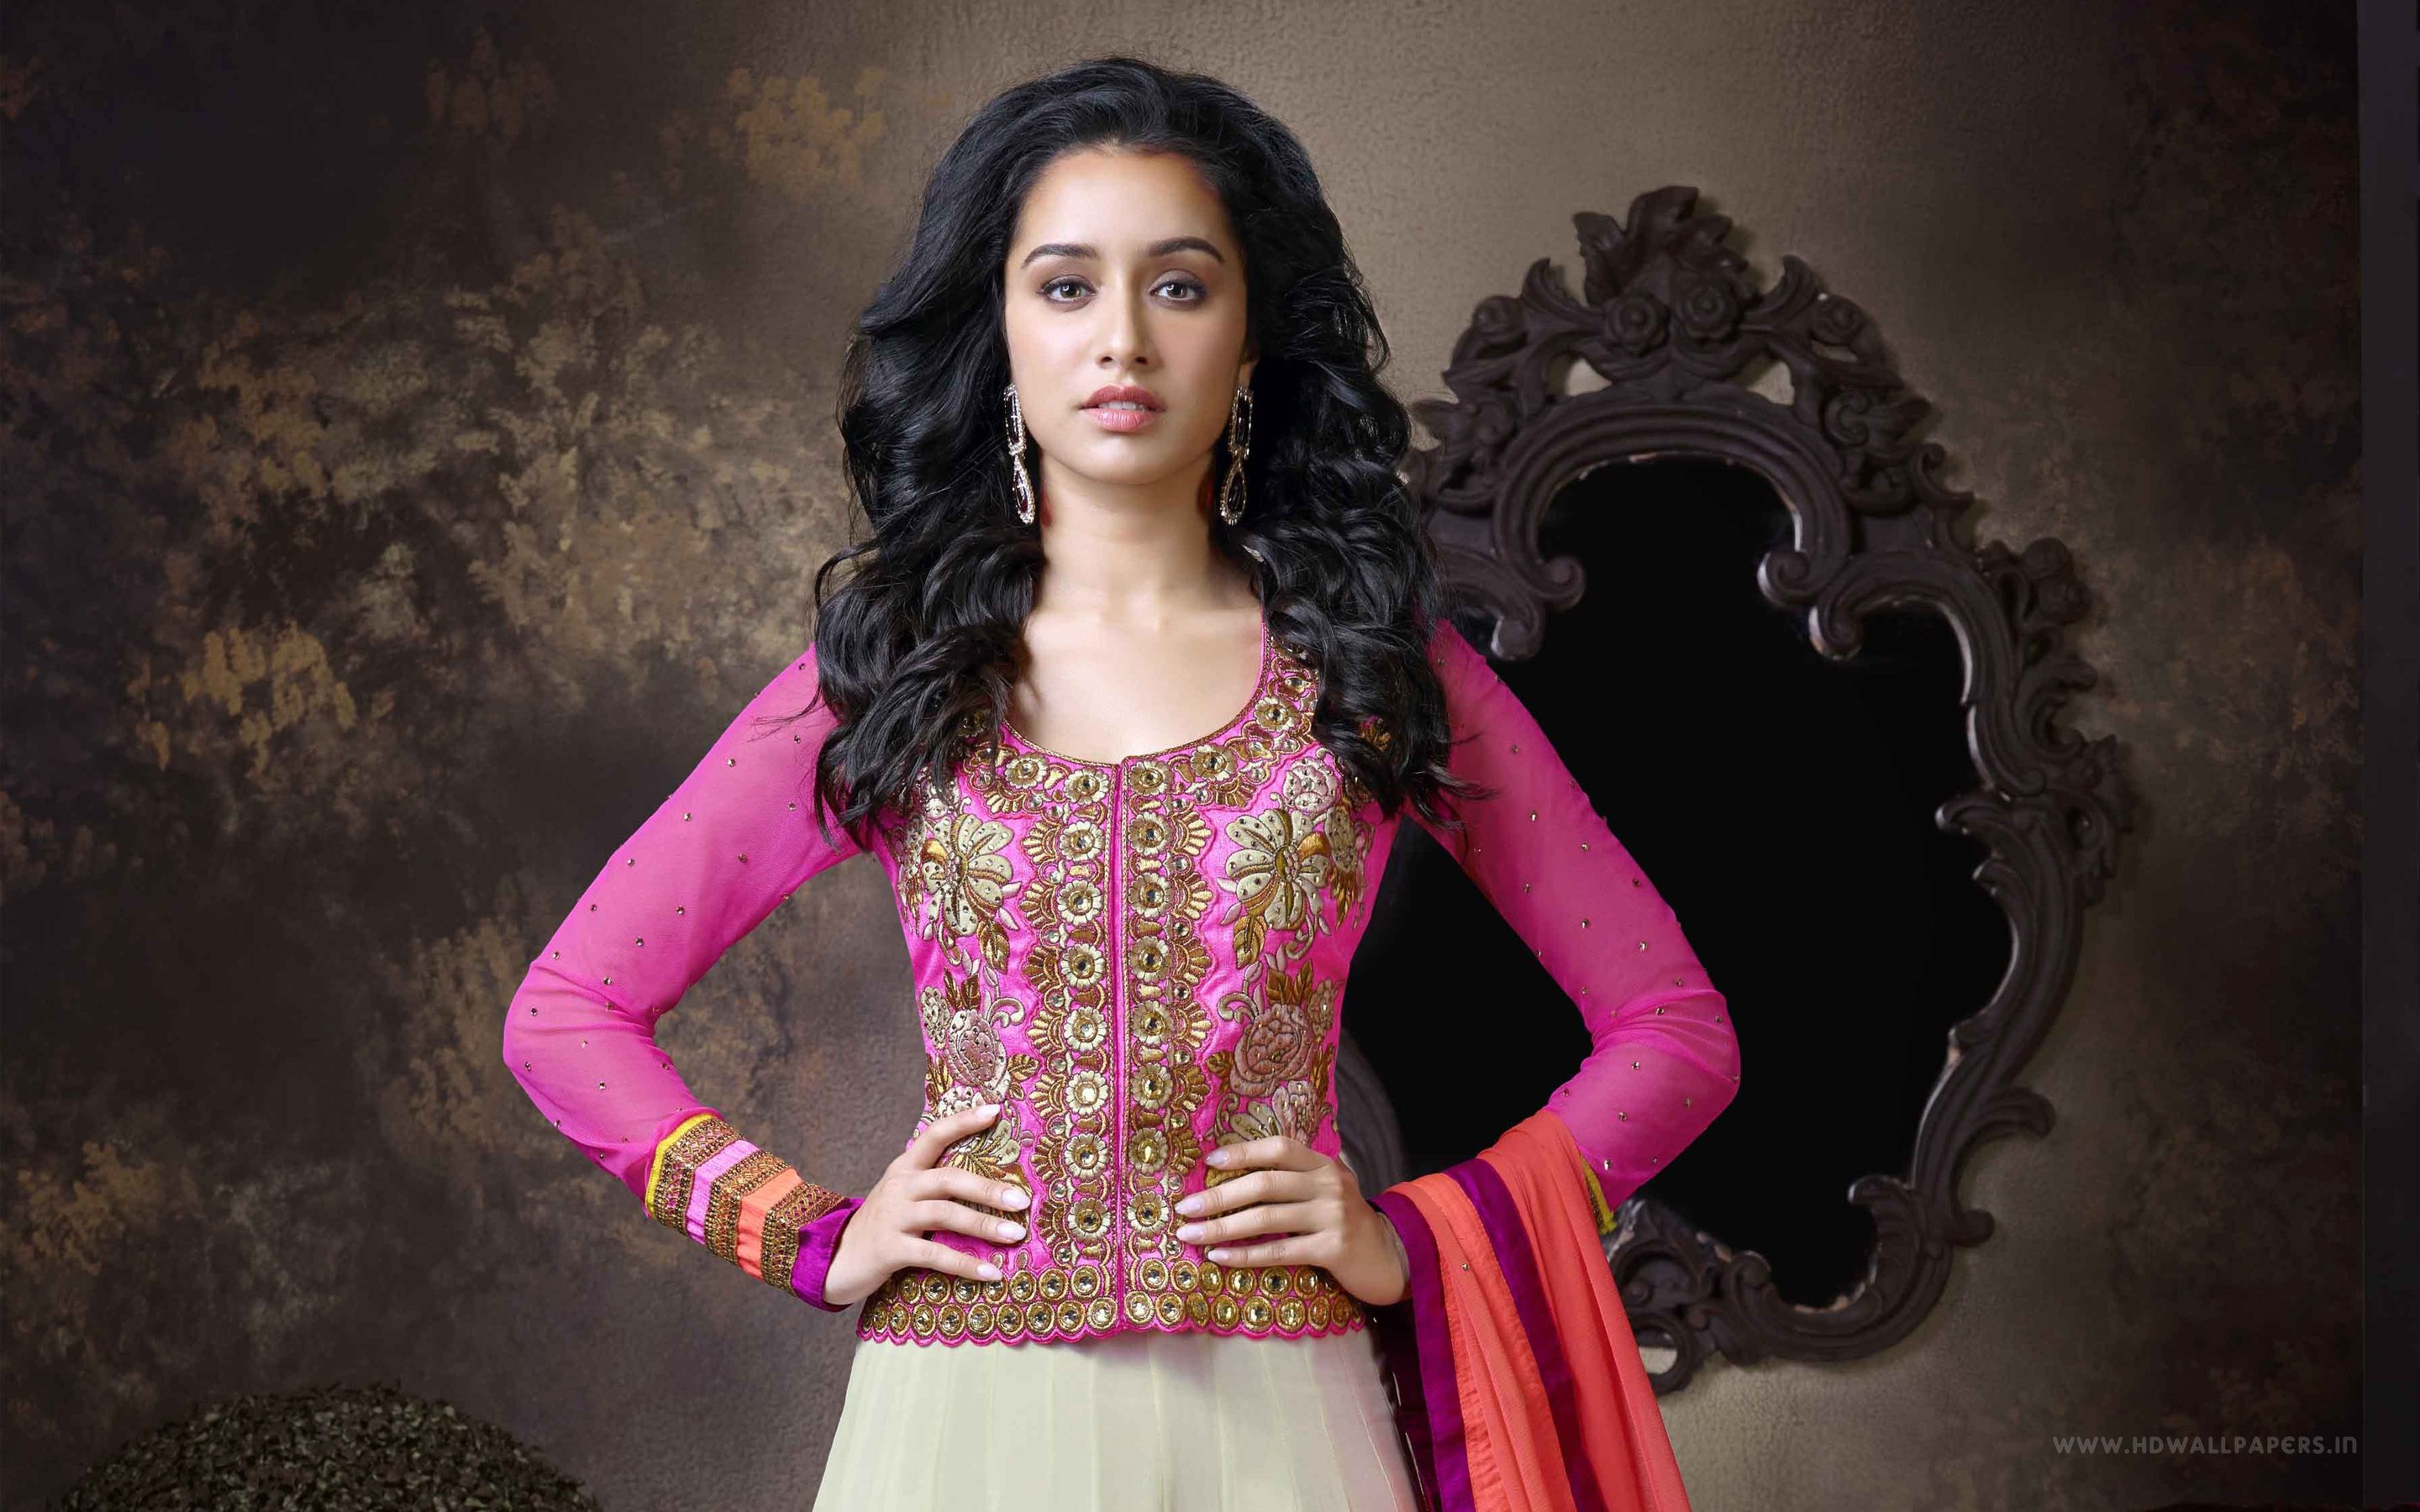 Shraddha Kapoor Very Cute And Beautiful Wallpapers